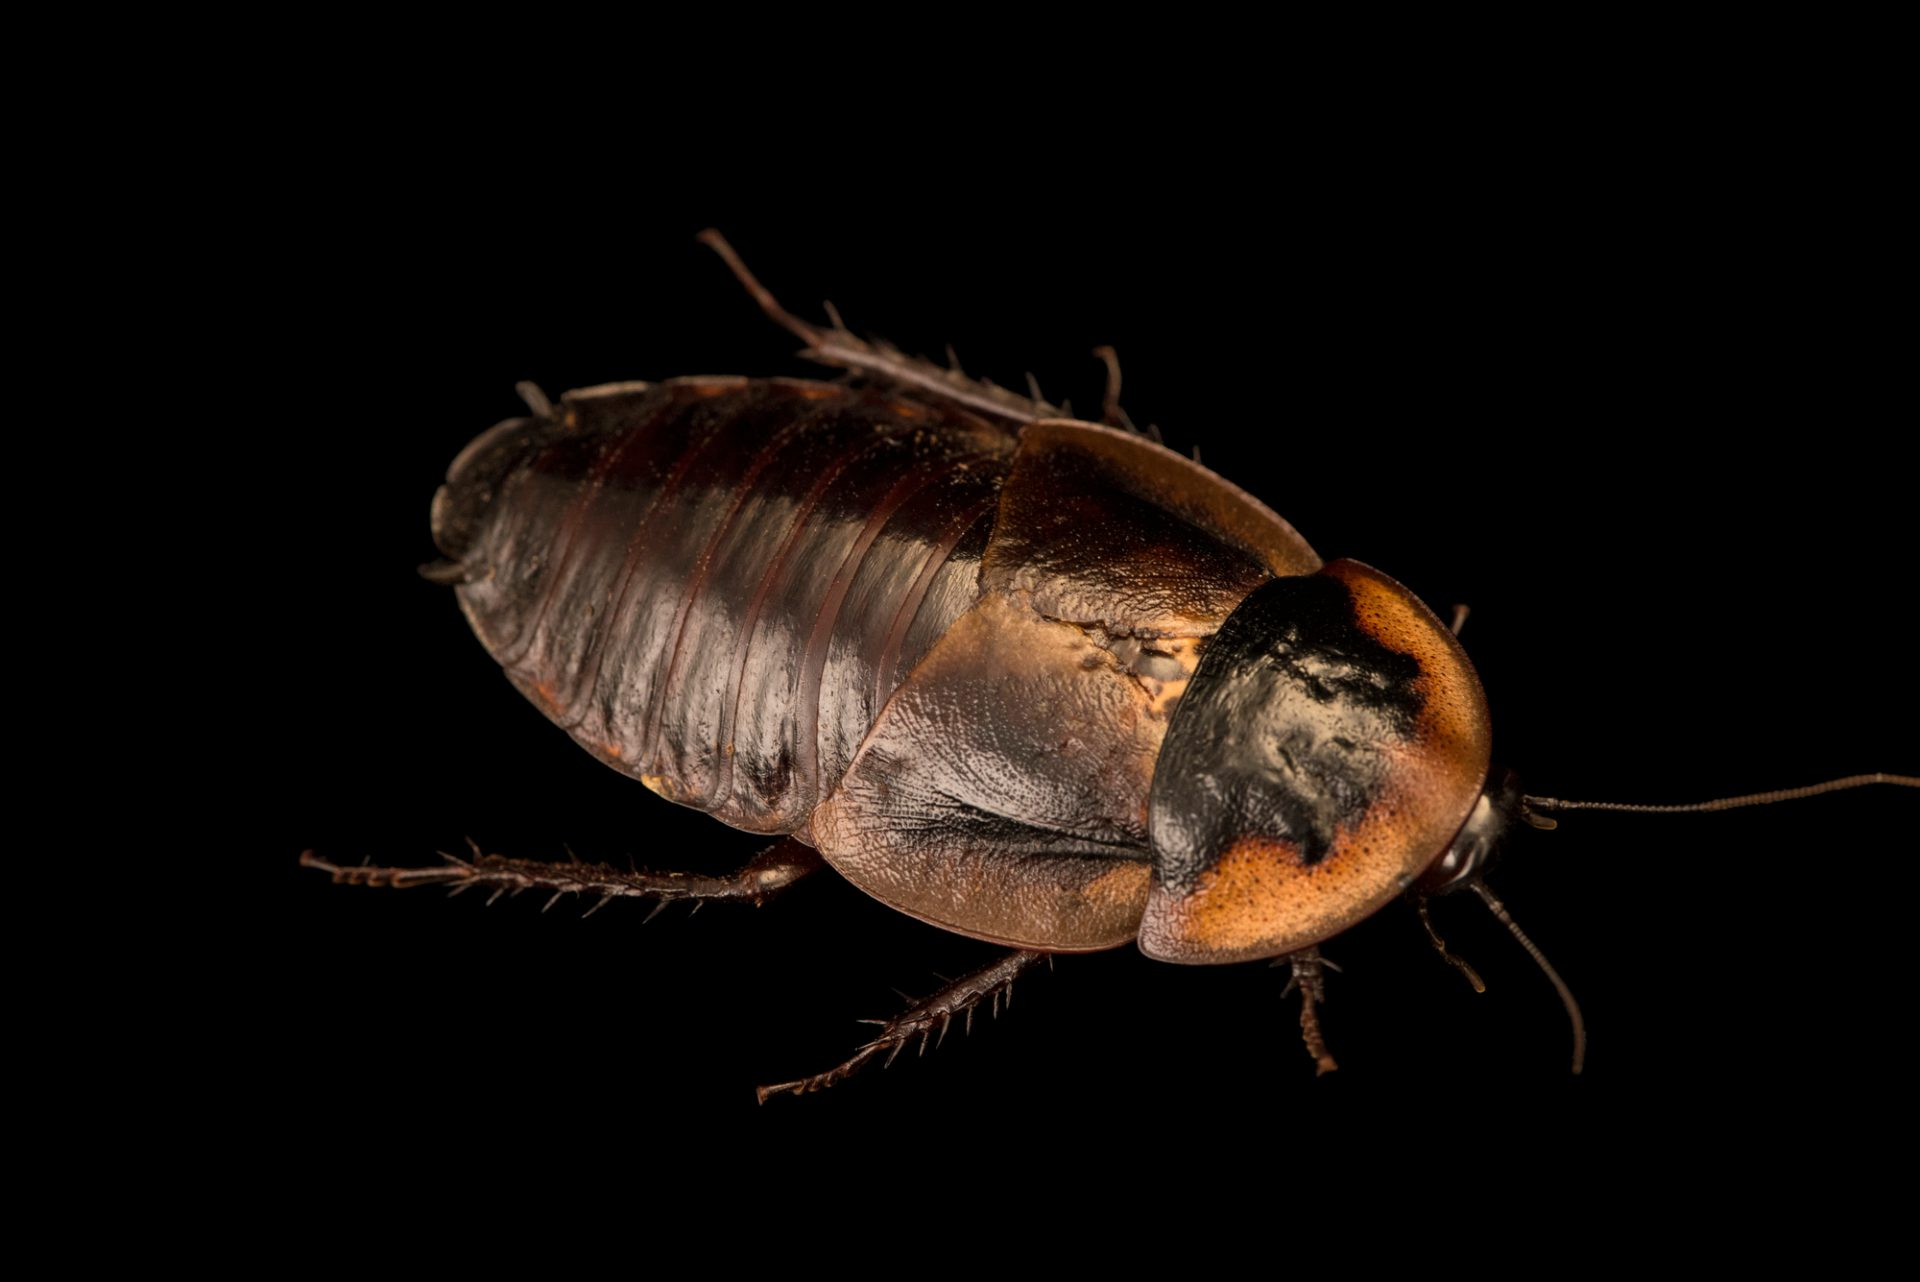 Photo: Cockroach (Byrsotria rothi) at Wroclaw Zoo.